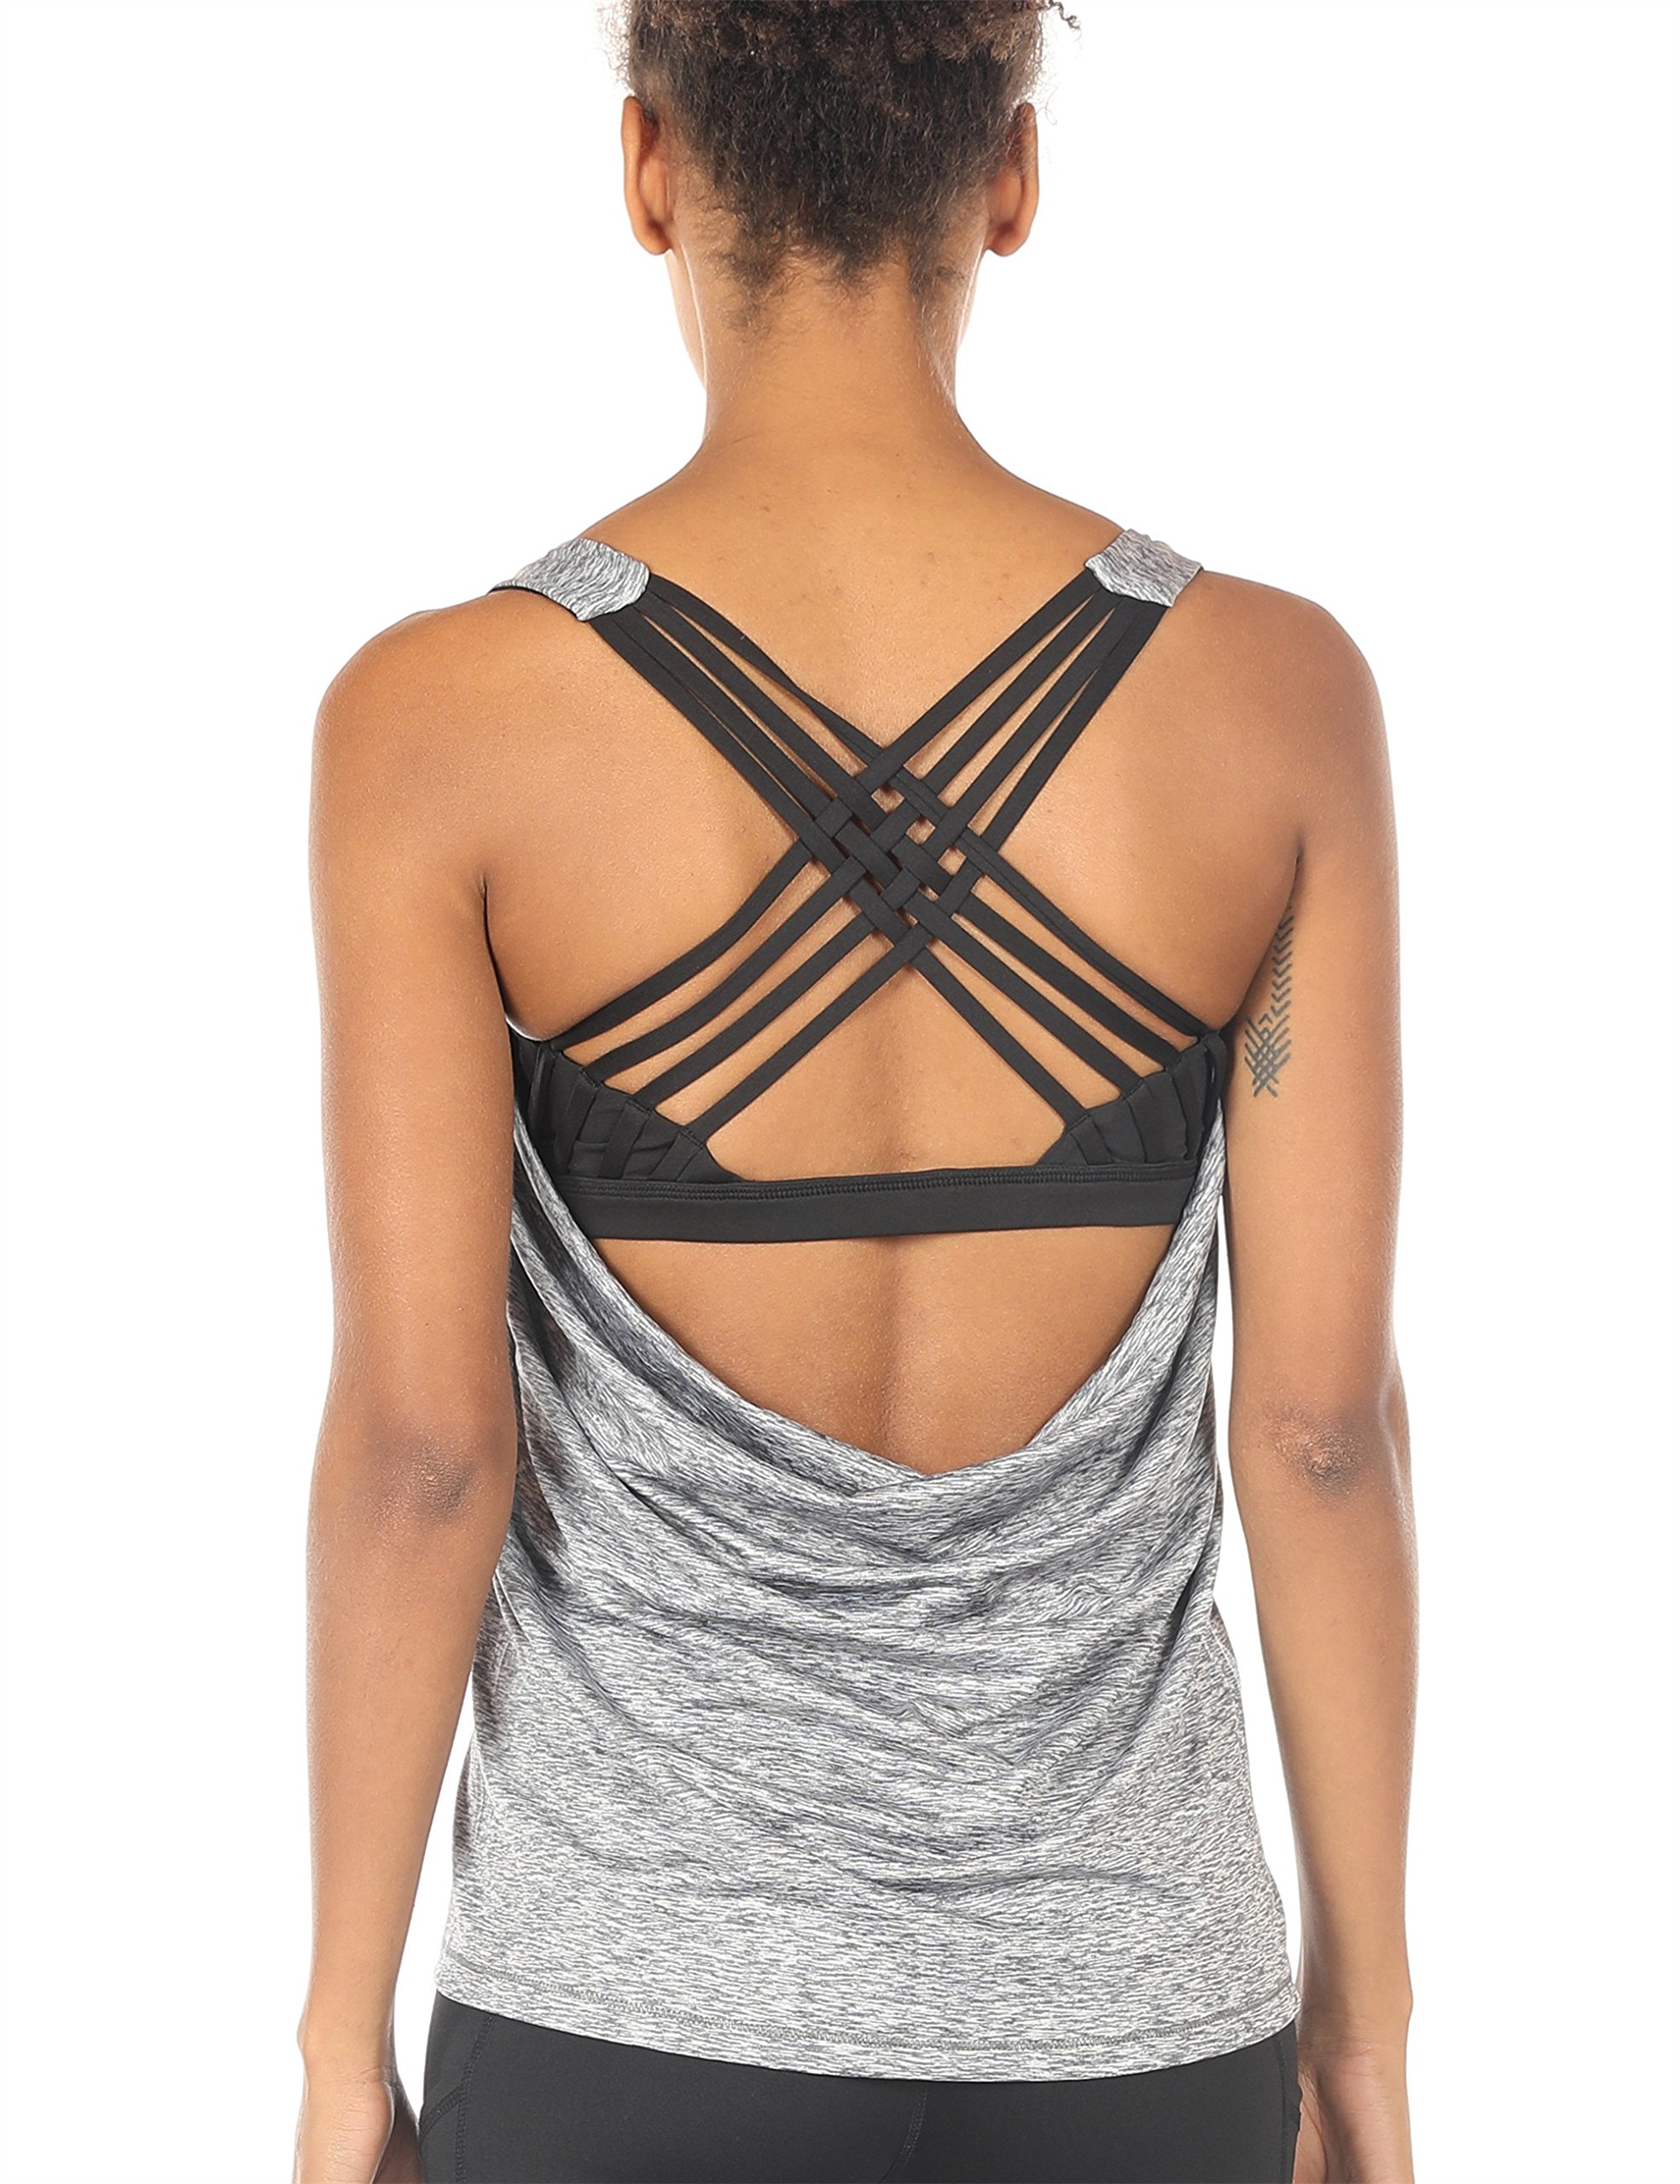 icyzone Yoga Tops Workouts Clothes Activewear Built in Bra Tank Tops for Women (L, Grey Melange) by icyzone (Image #1)